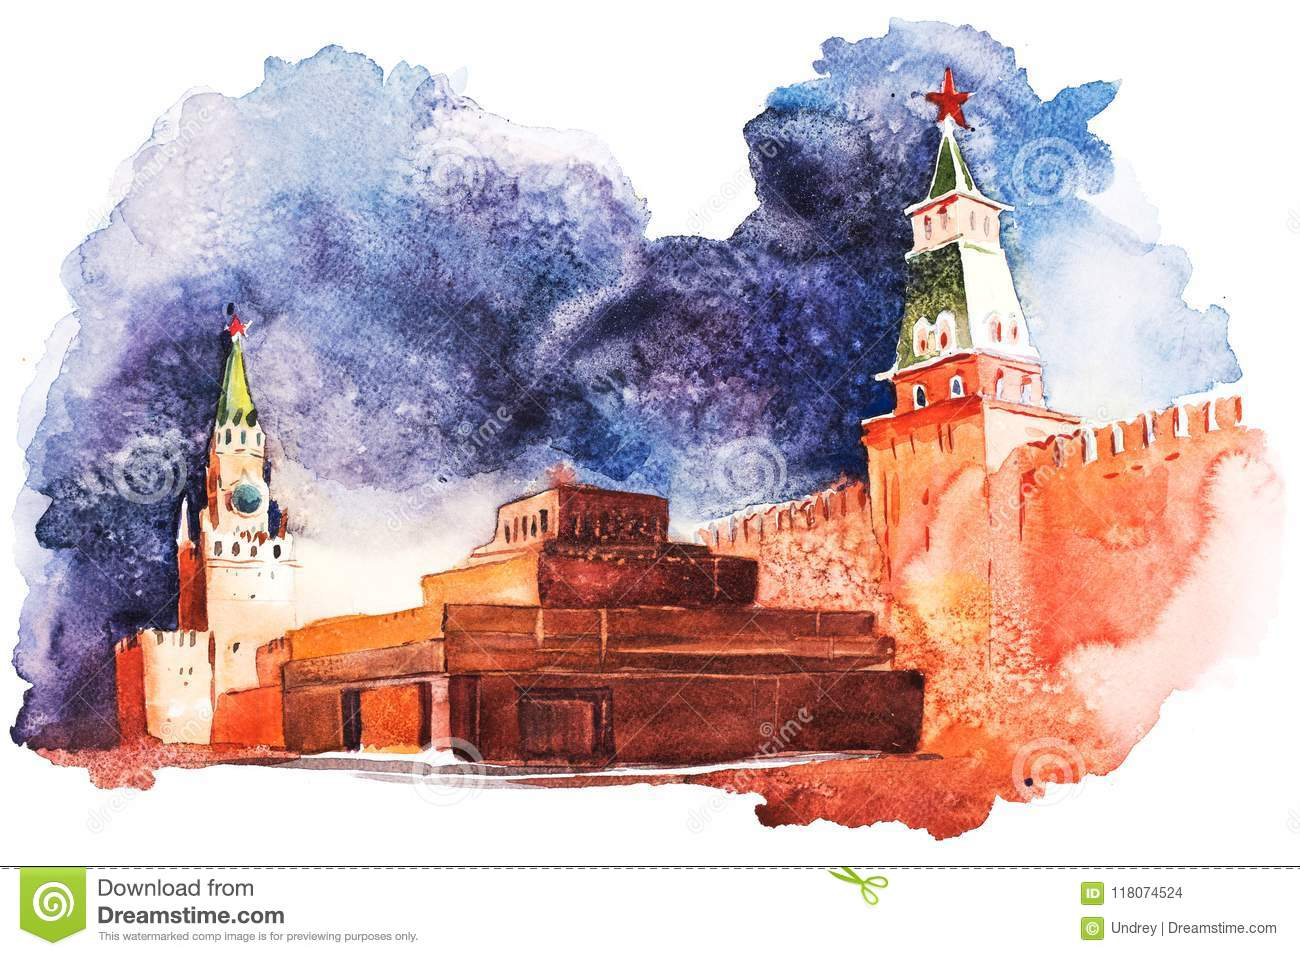 Lenin Mausoleum in Moscow on Red Square Russia Watercolor